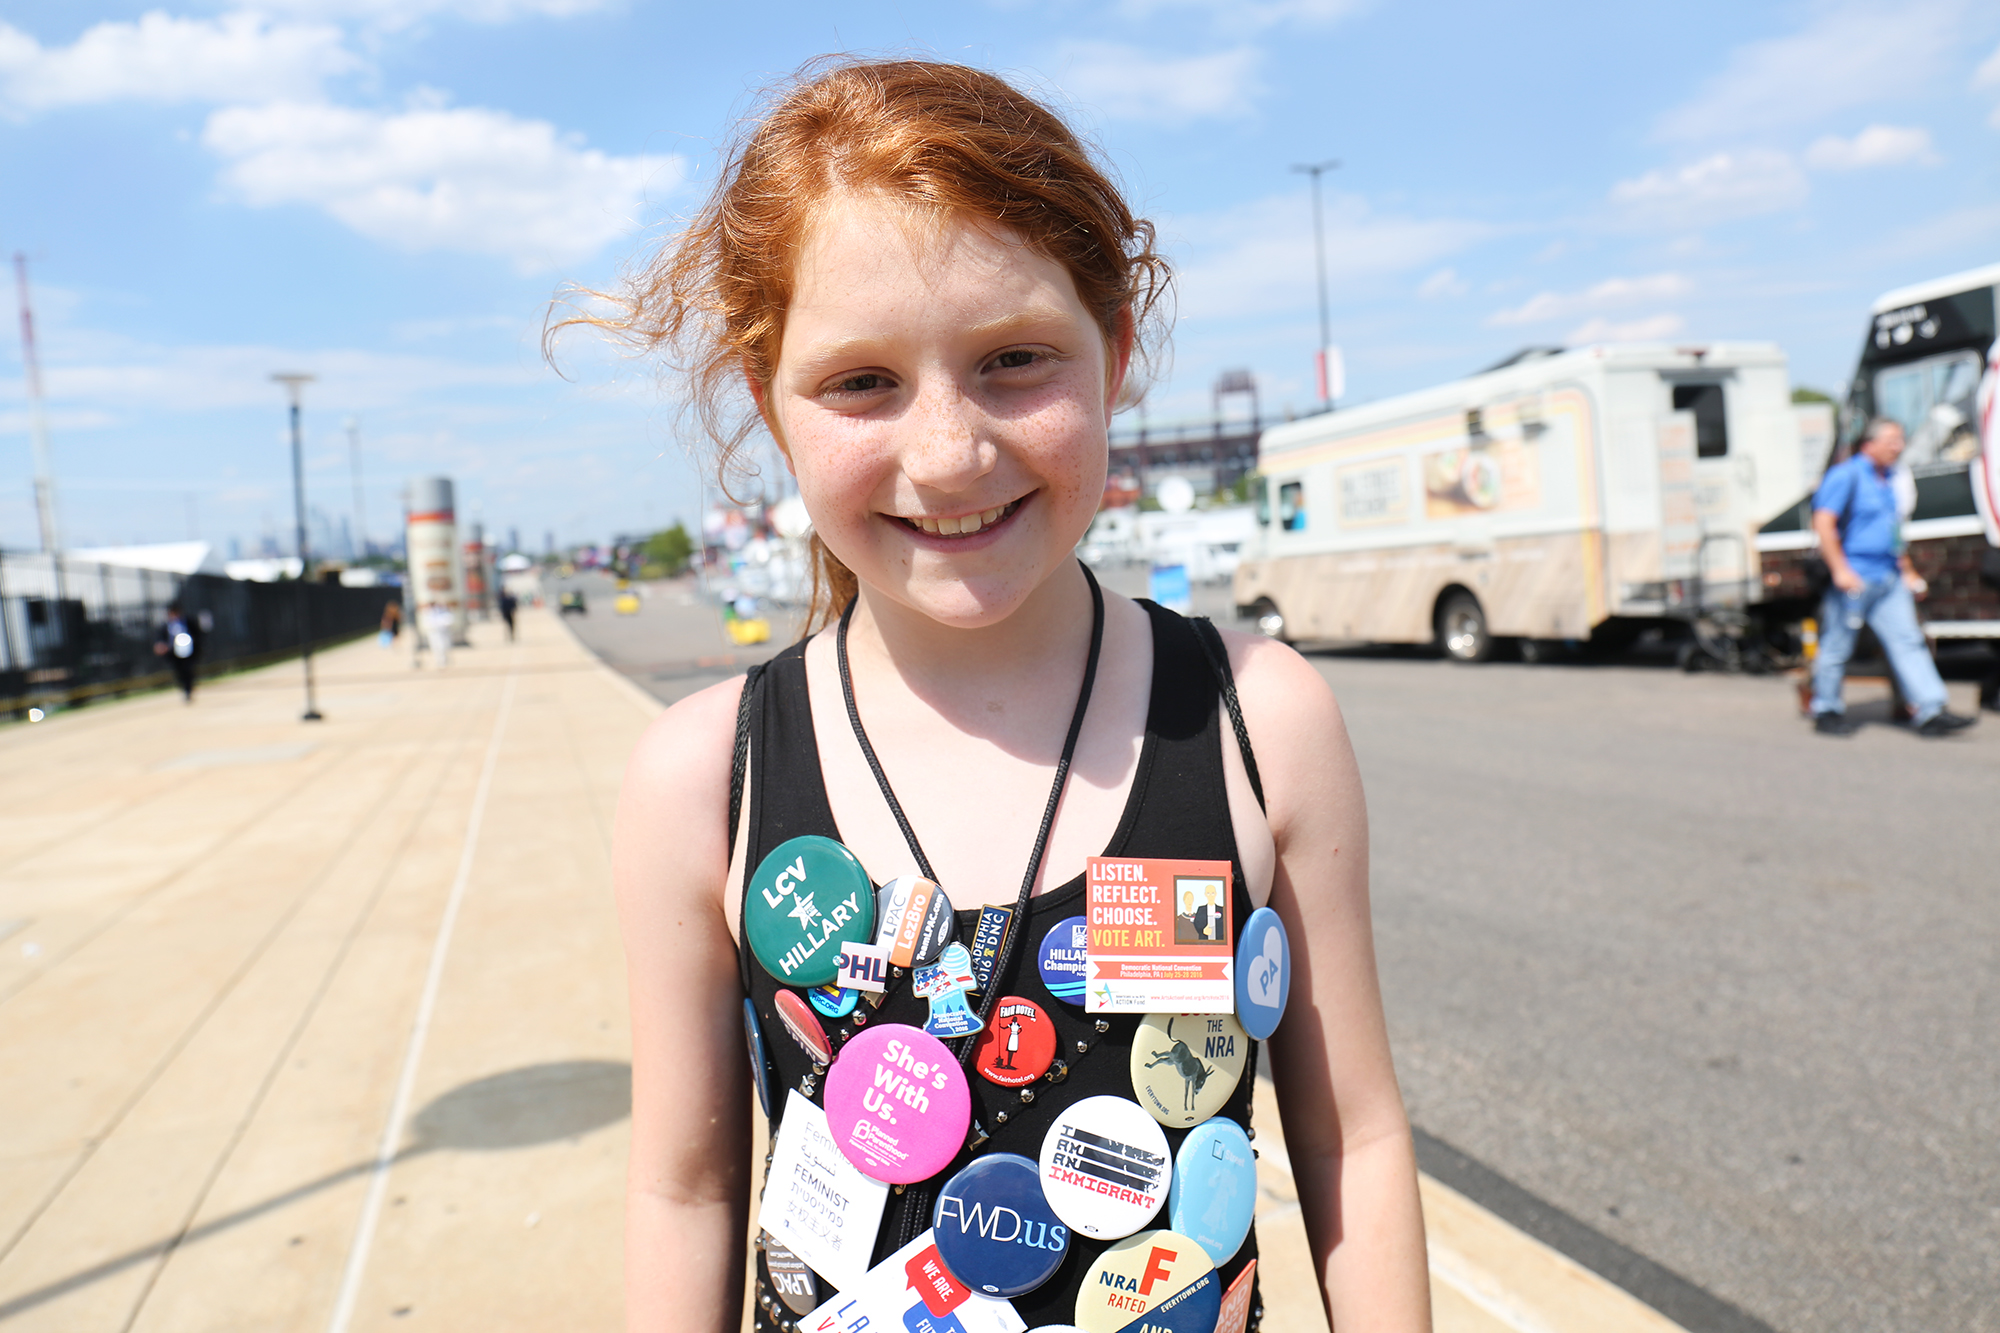 Liza Greenberg, 9, is a Hillary Clinton supporter from New York. Photo by Abbey Oldham